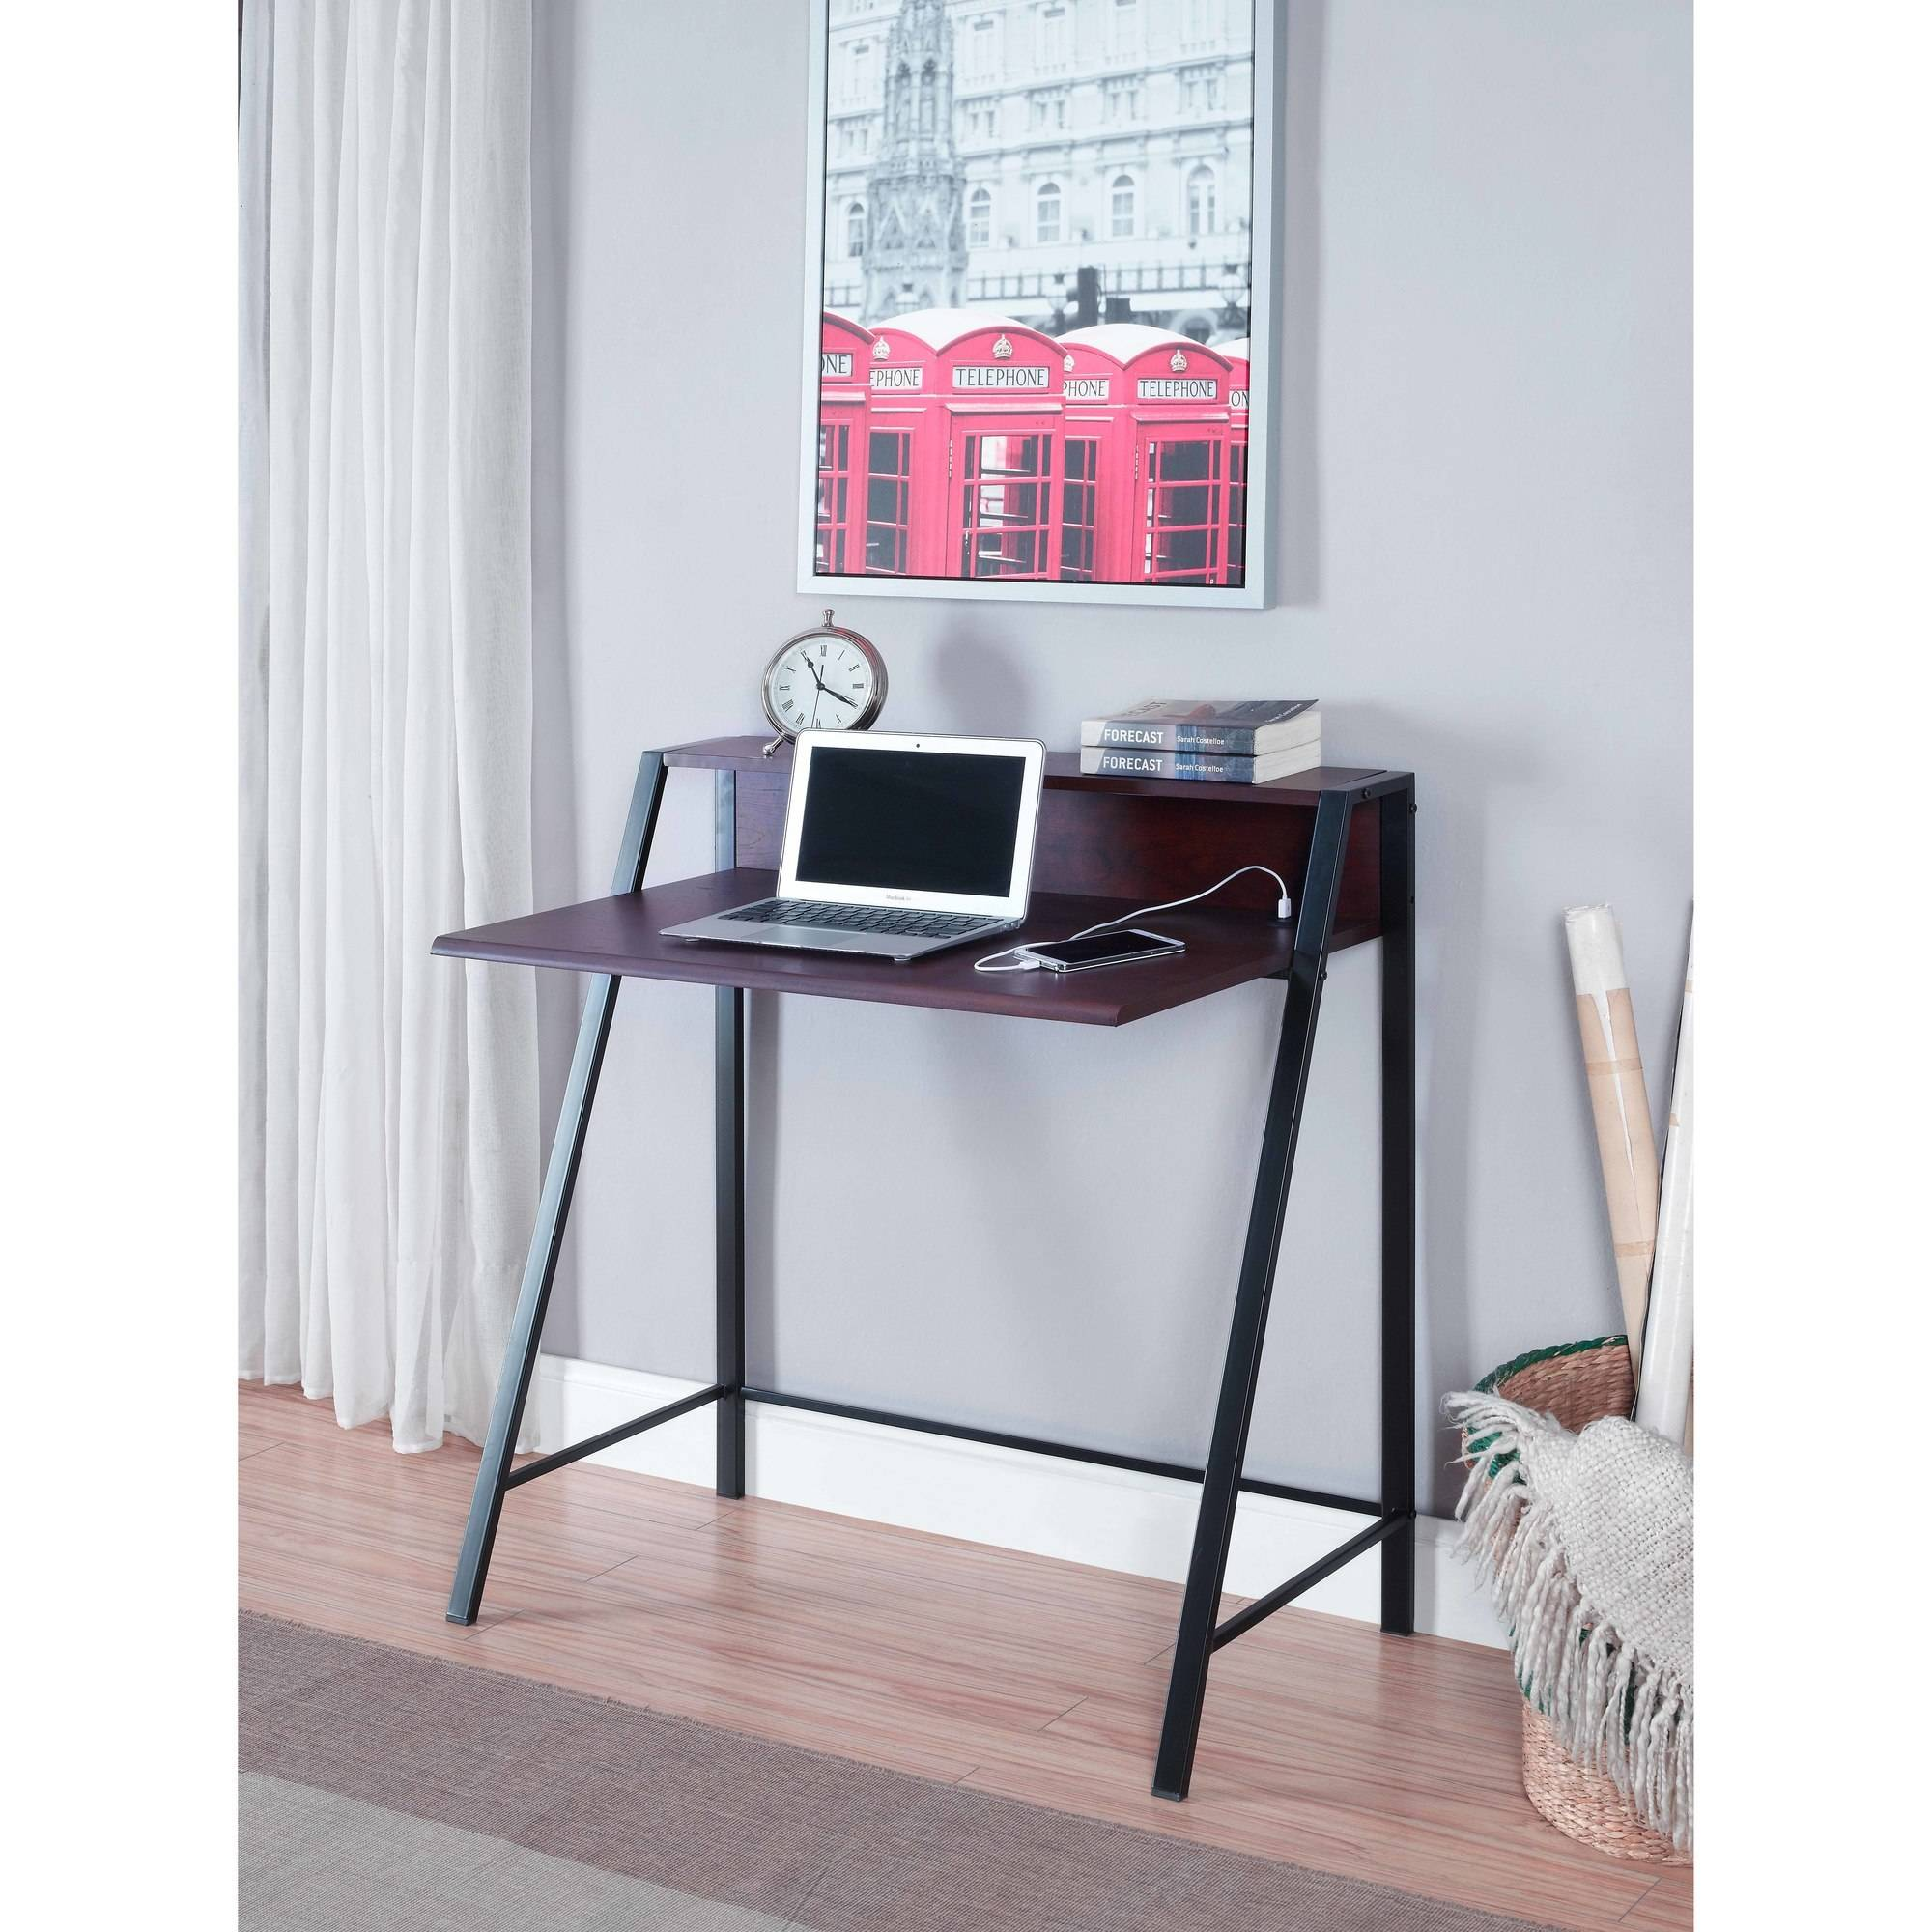 for ana white two person projects desk diy